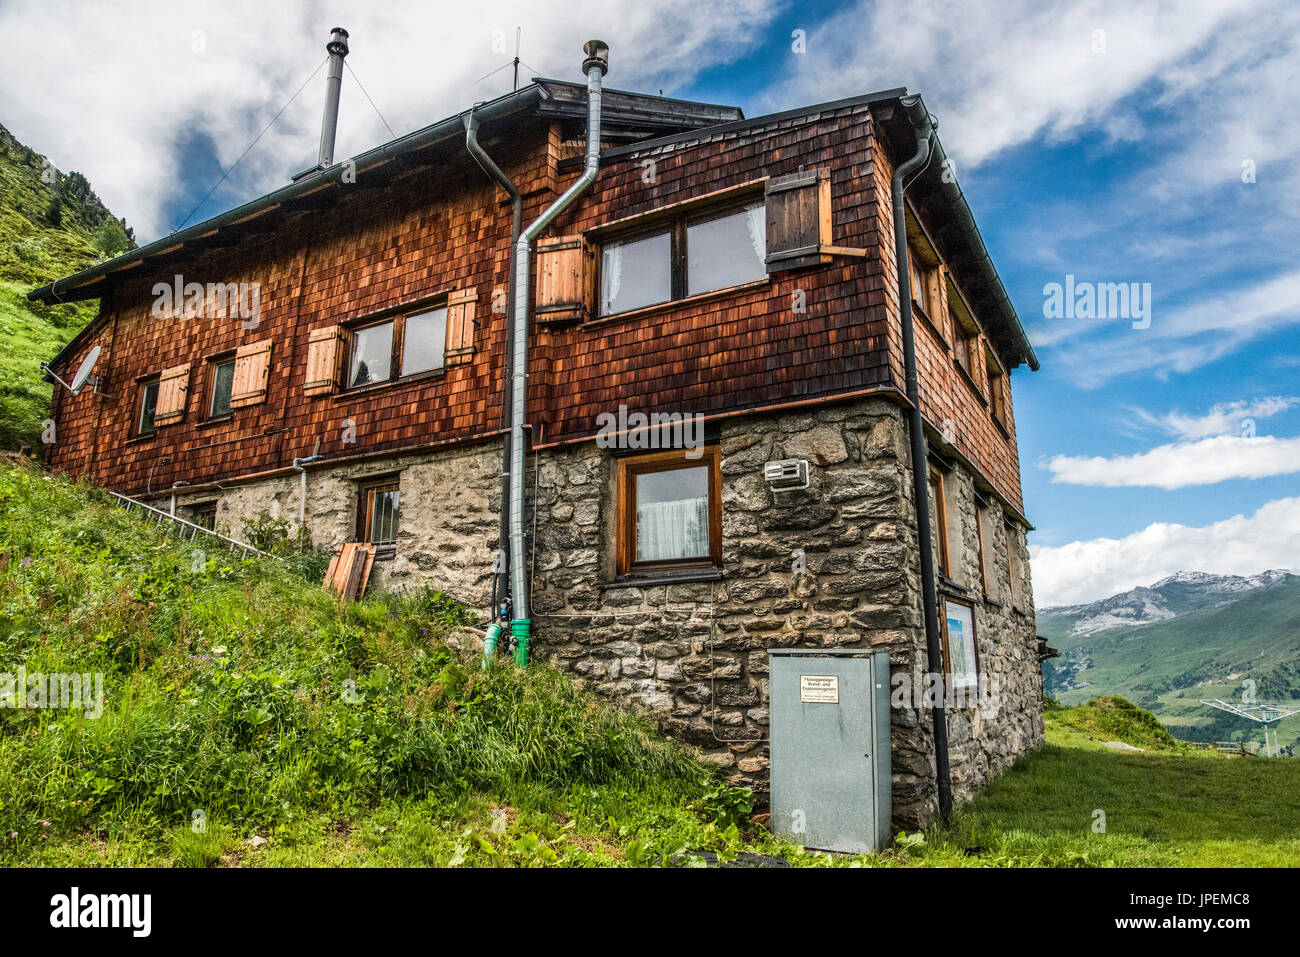 The Gams Hut mountain refuge located above Mayrhofen-Finkenberg in the Austrian Zillertal Alps of Tirol Stock Photo